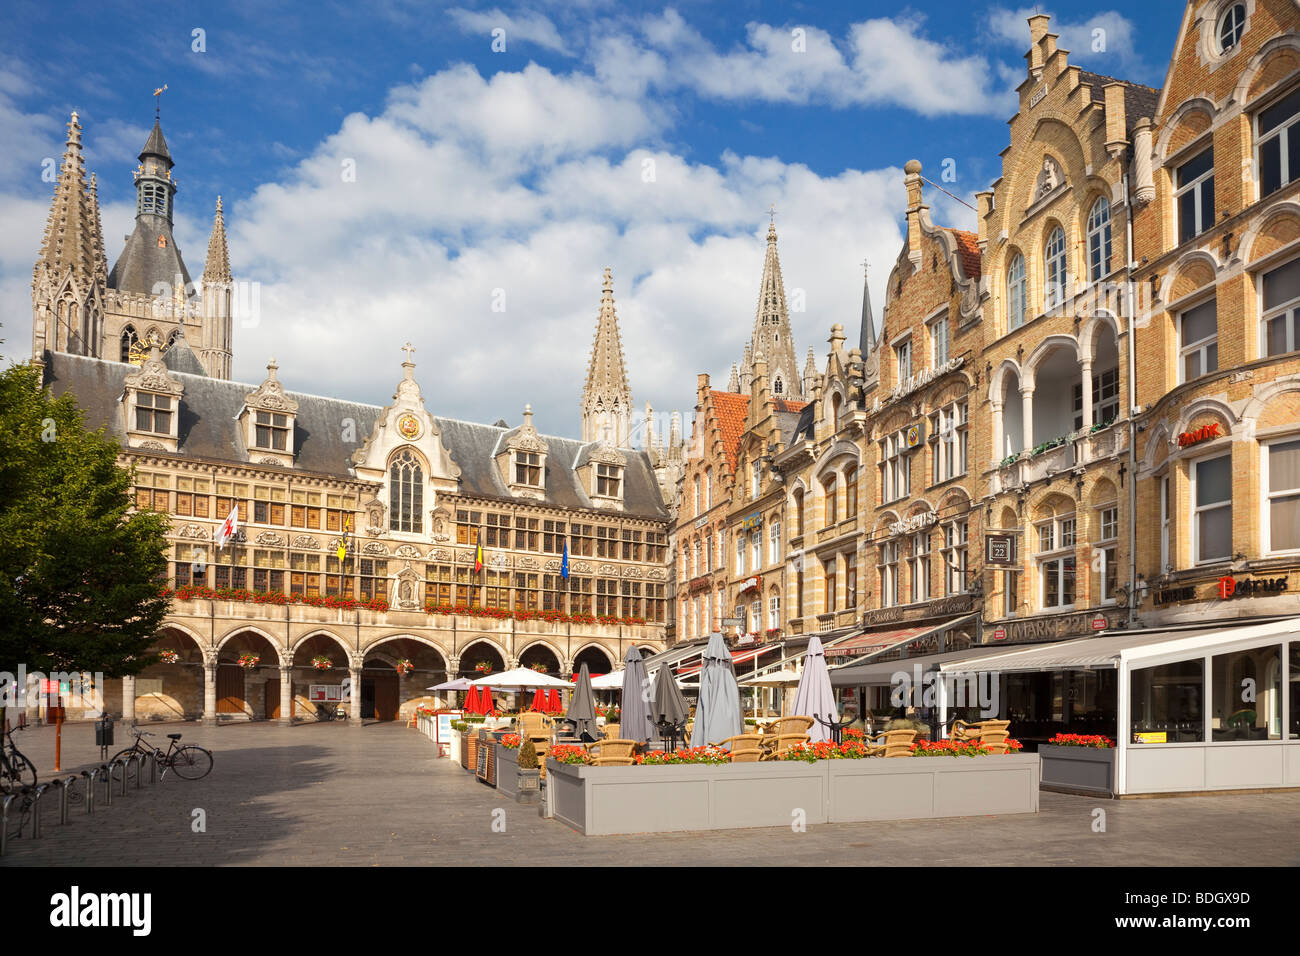 Cafes near the Cloth Hall in Ypres town centre Belgium Europe - Stock Image